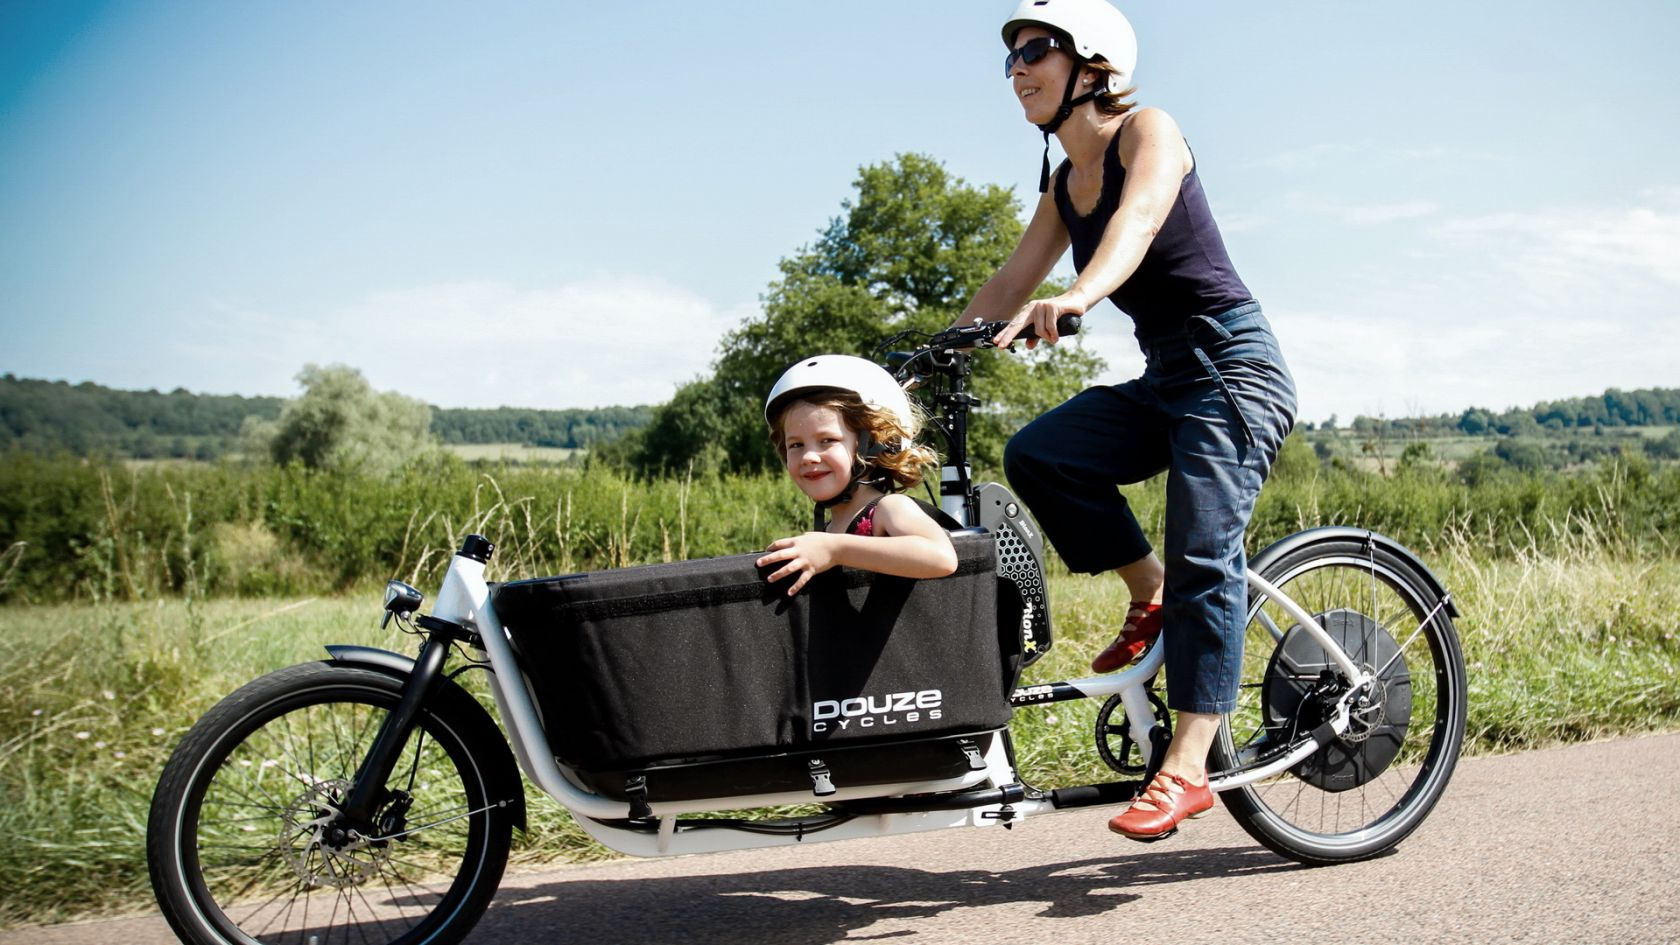 DOUZE-Cycles_FAMILY-slider.jpg